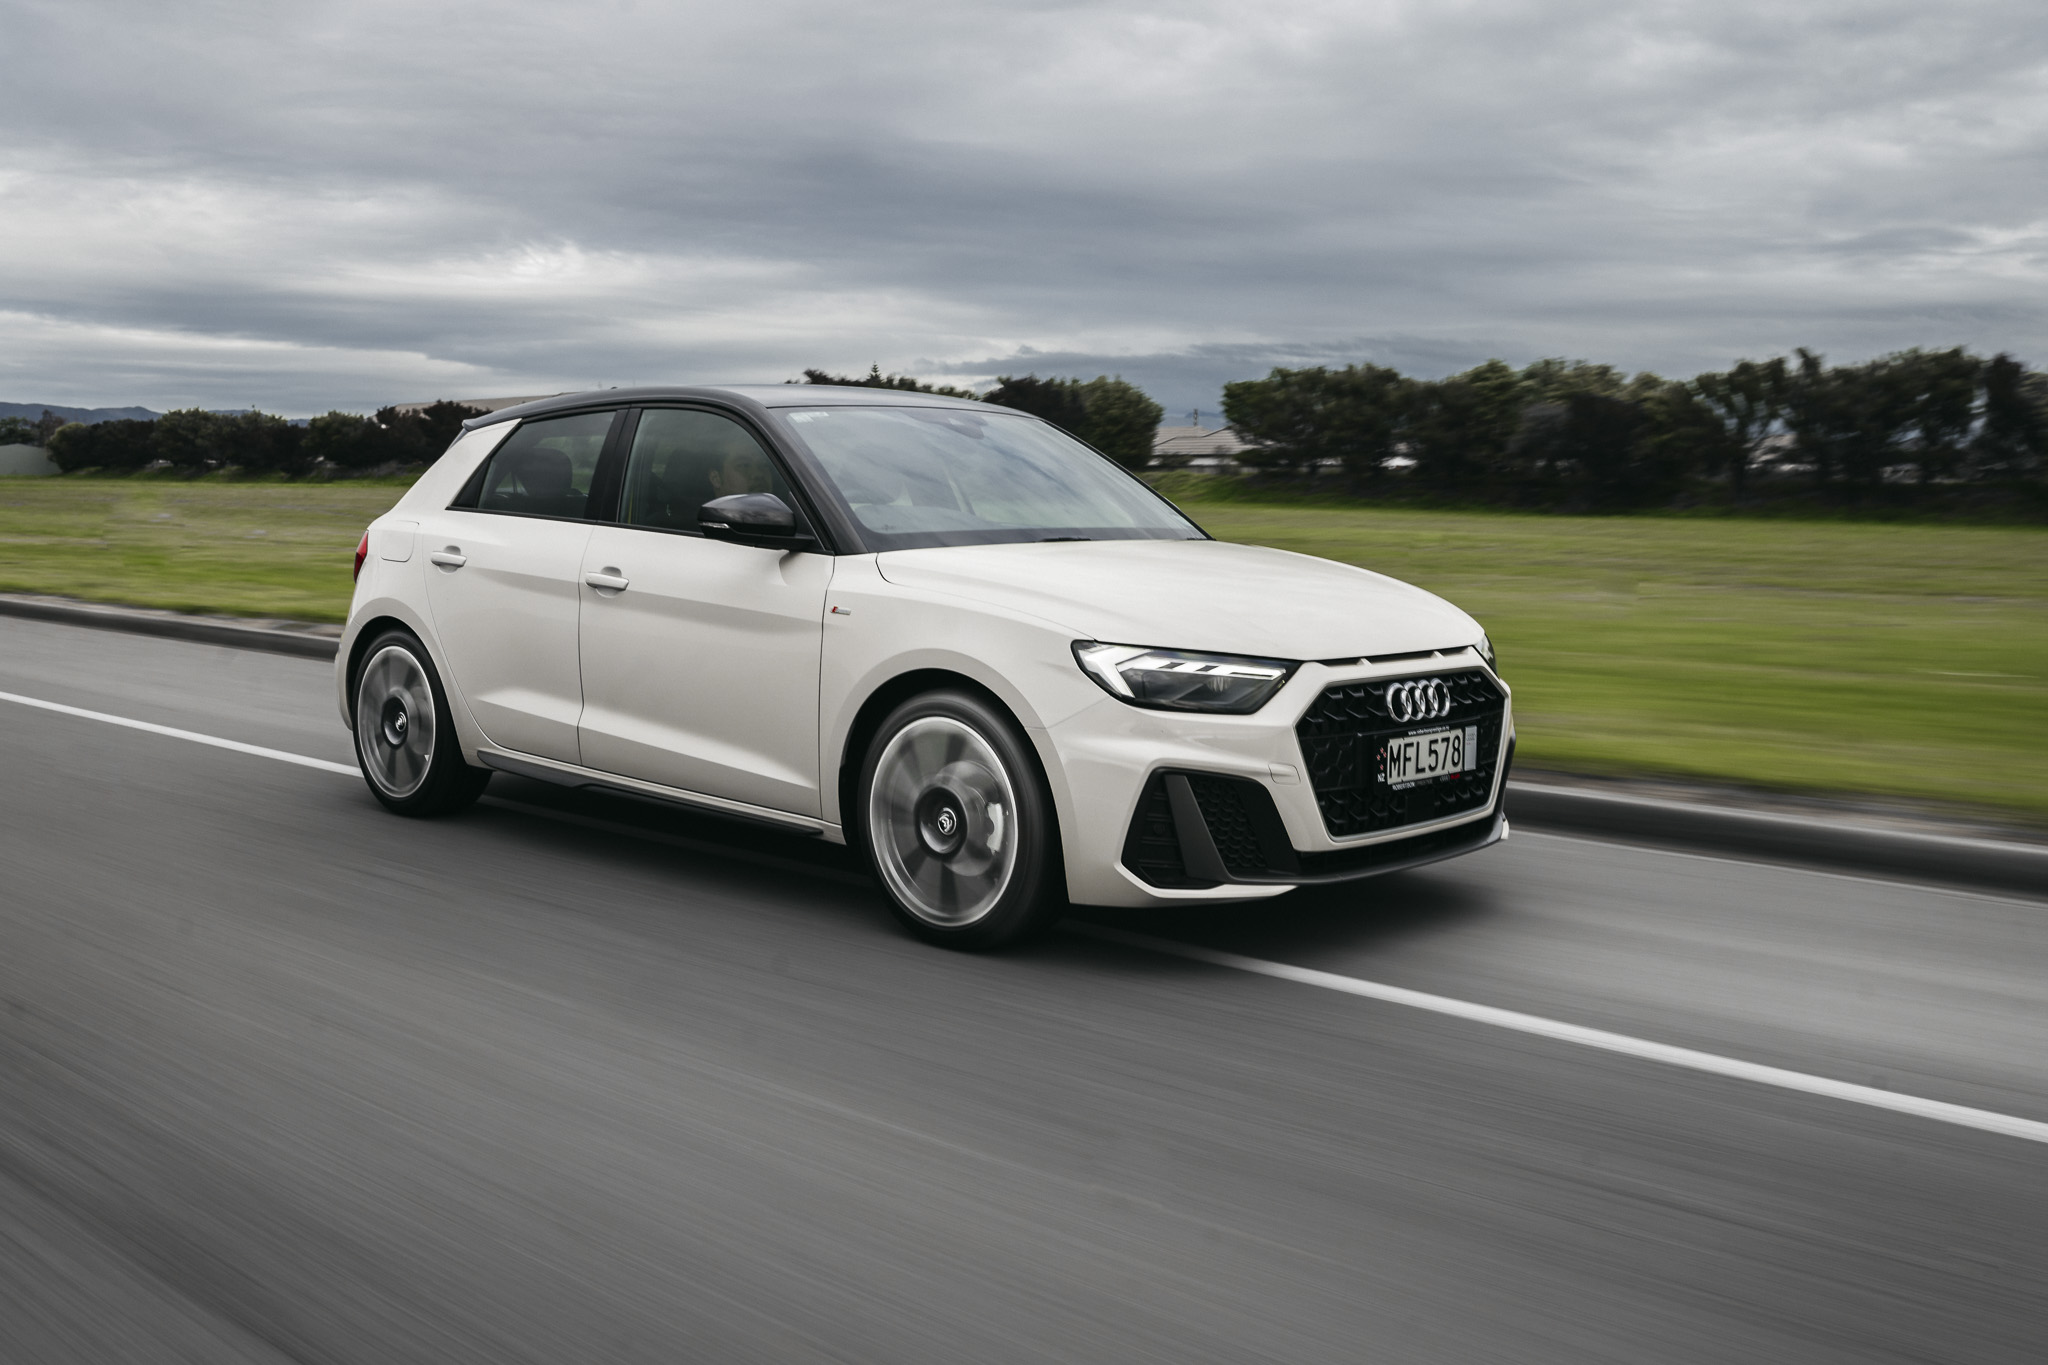 The new Audi A1 Sportsback that I was lucky enough to have for the week